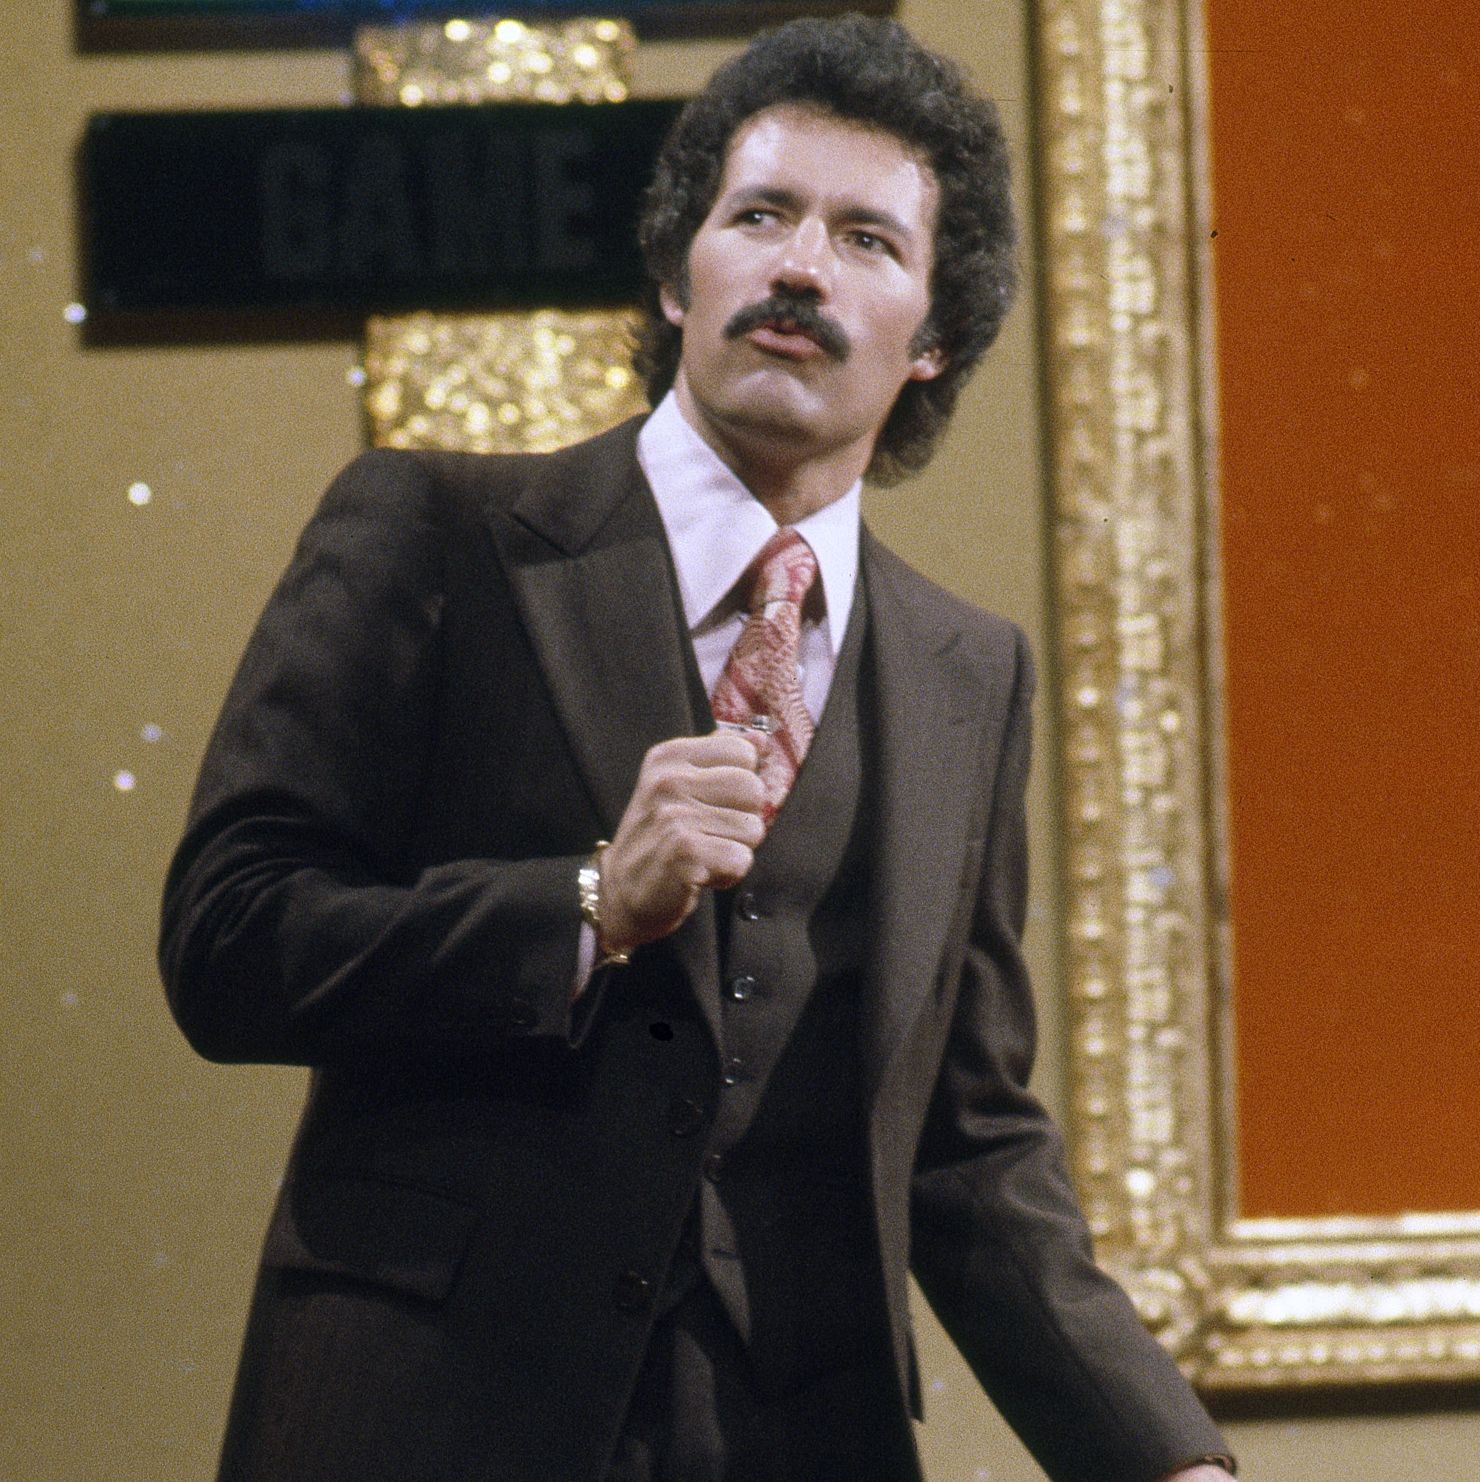 How Alex Trebek's Decades-Long Career Hosting 'Jeopardy!' Racked Up an Insanely High Net Worth